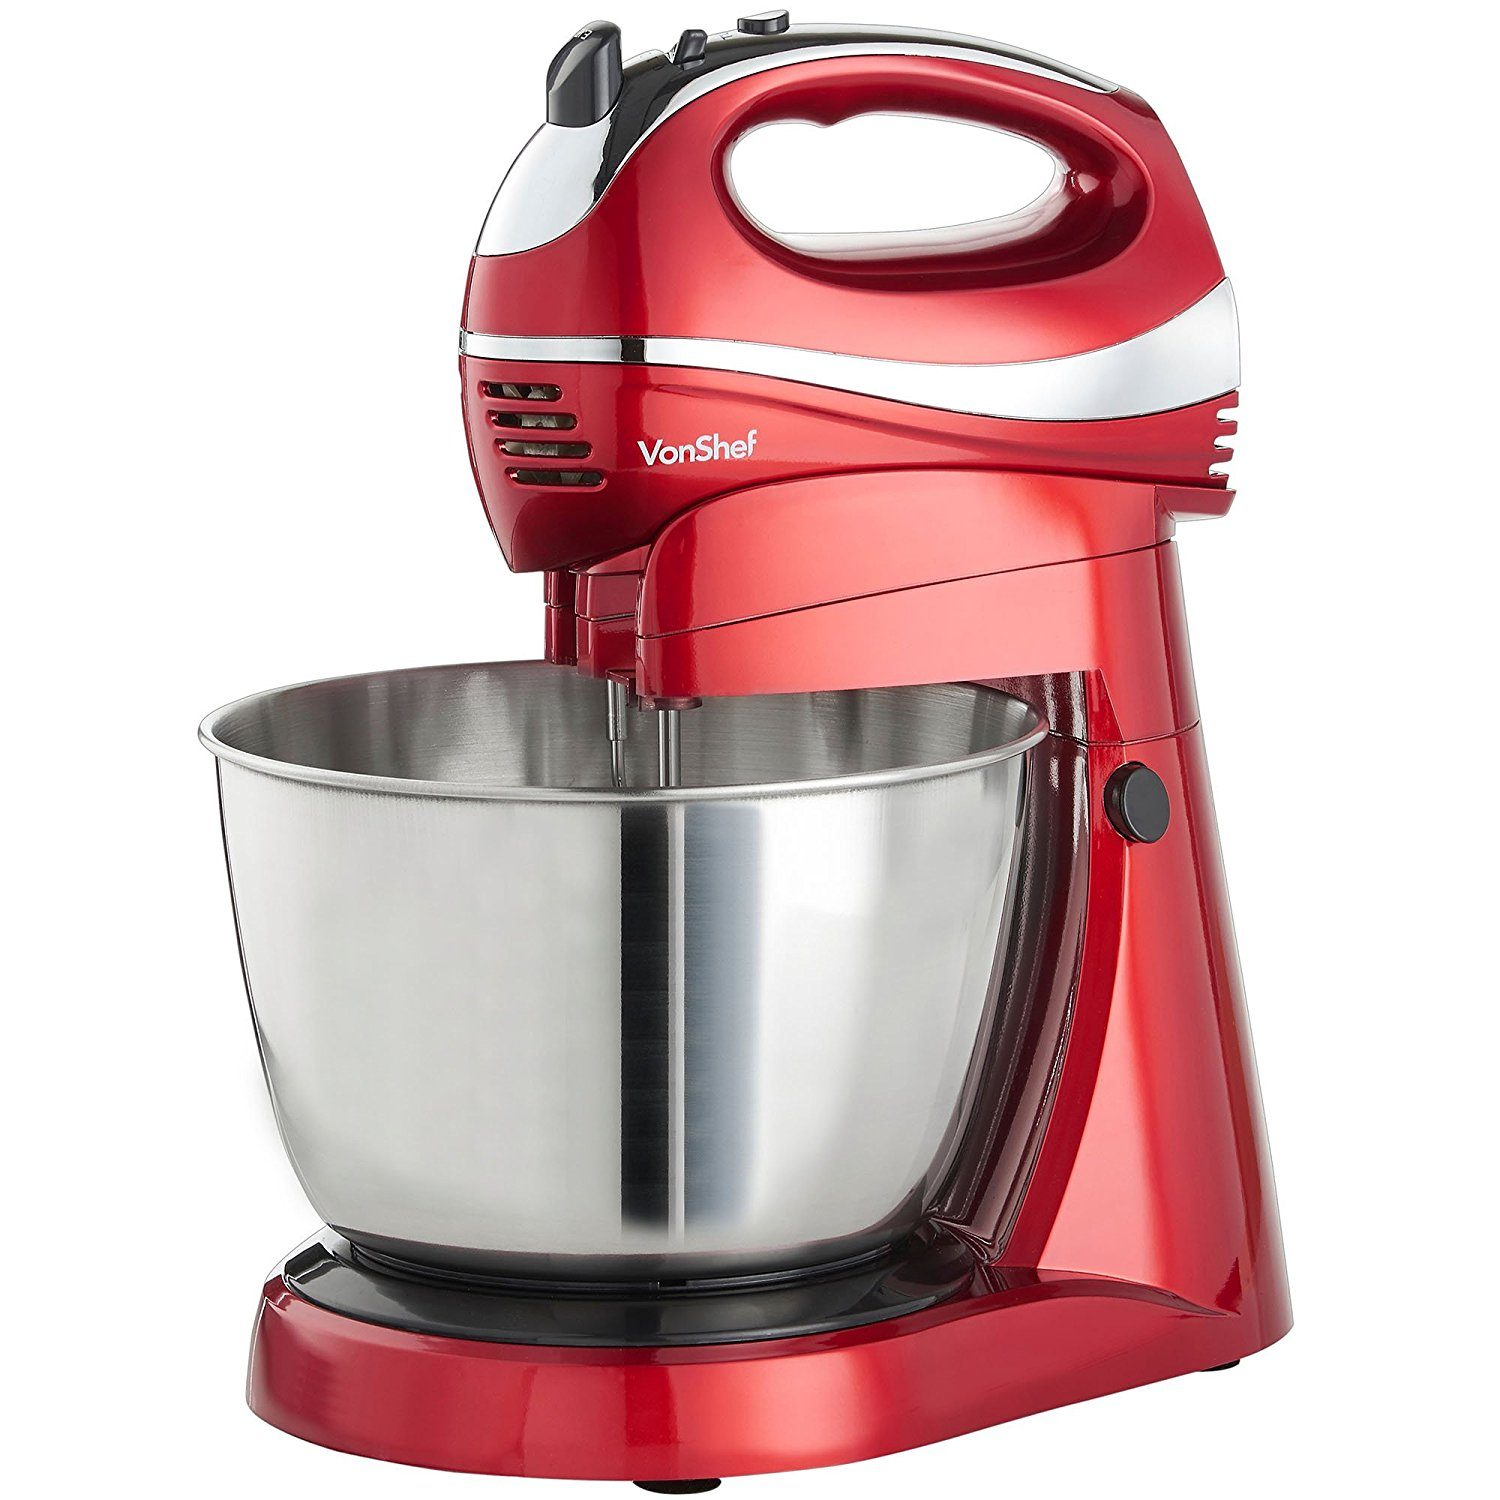 Lidl Silvercrest Nutrition Mixer Test 9 Of The Best Stand Mixers Including The Kitchen Aid Artisan